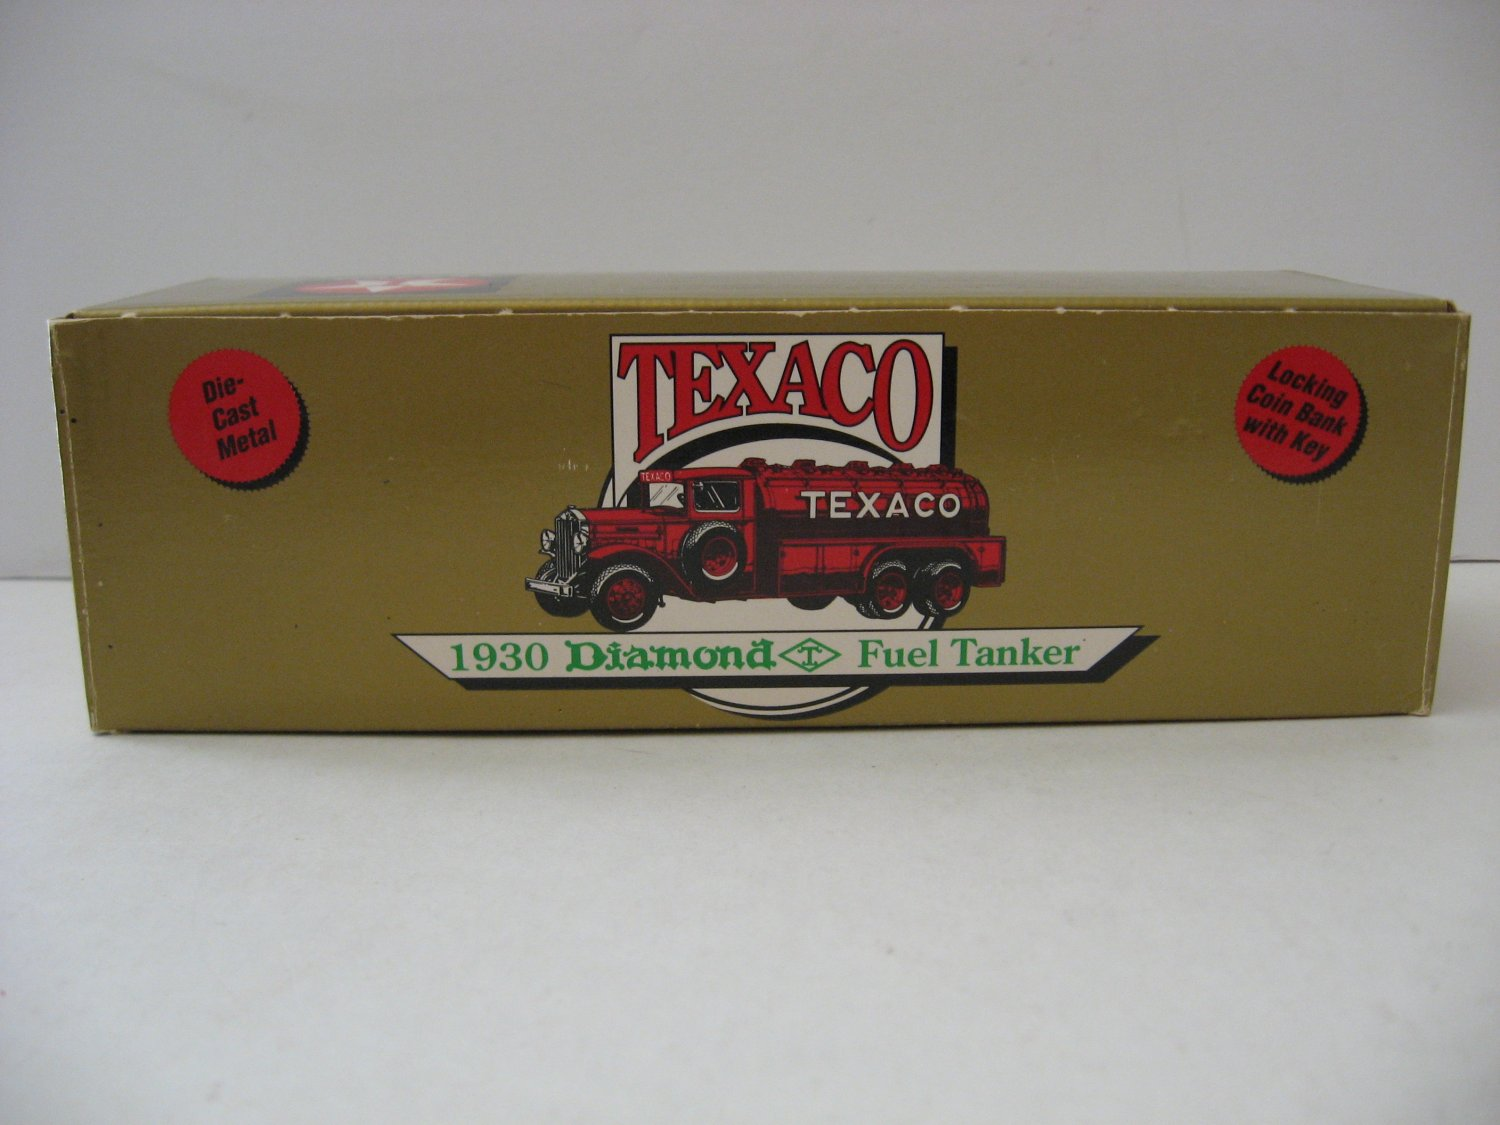 Texaco 1930 Diamond Fuel Tanker